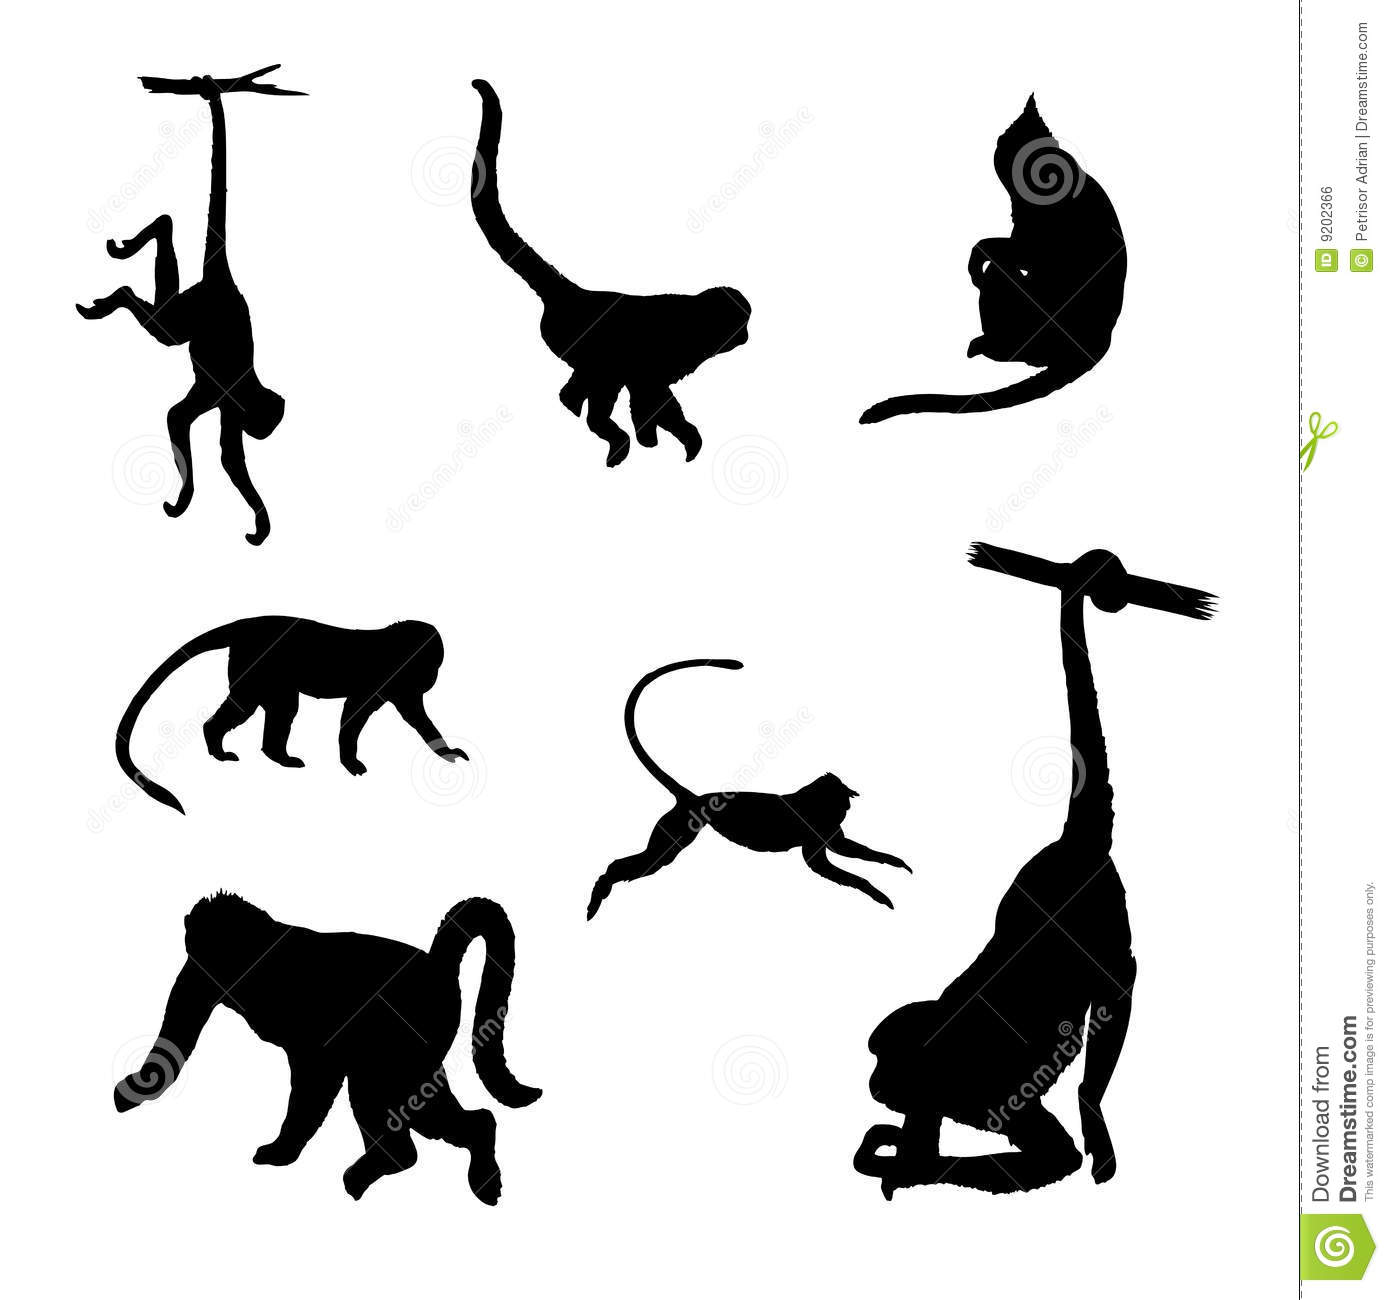 Isolated Monkey Vector Silhouettes Stock Vector